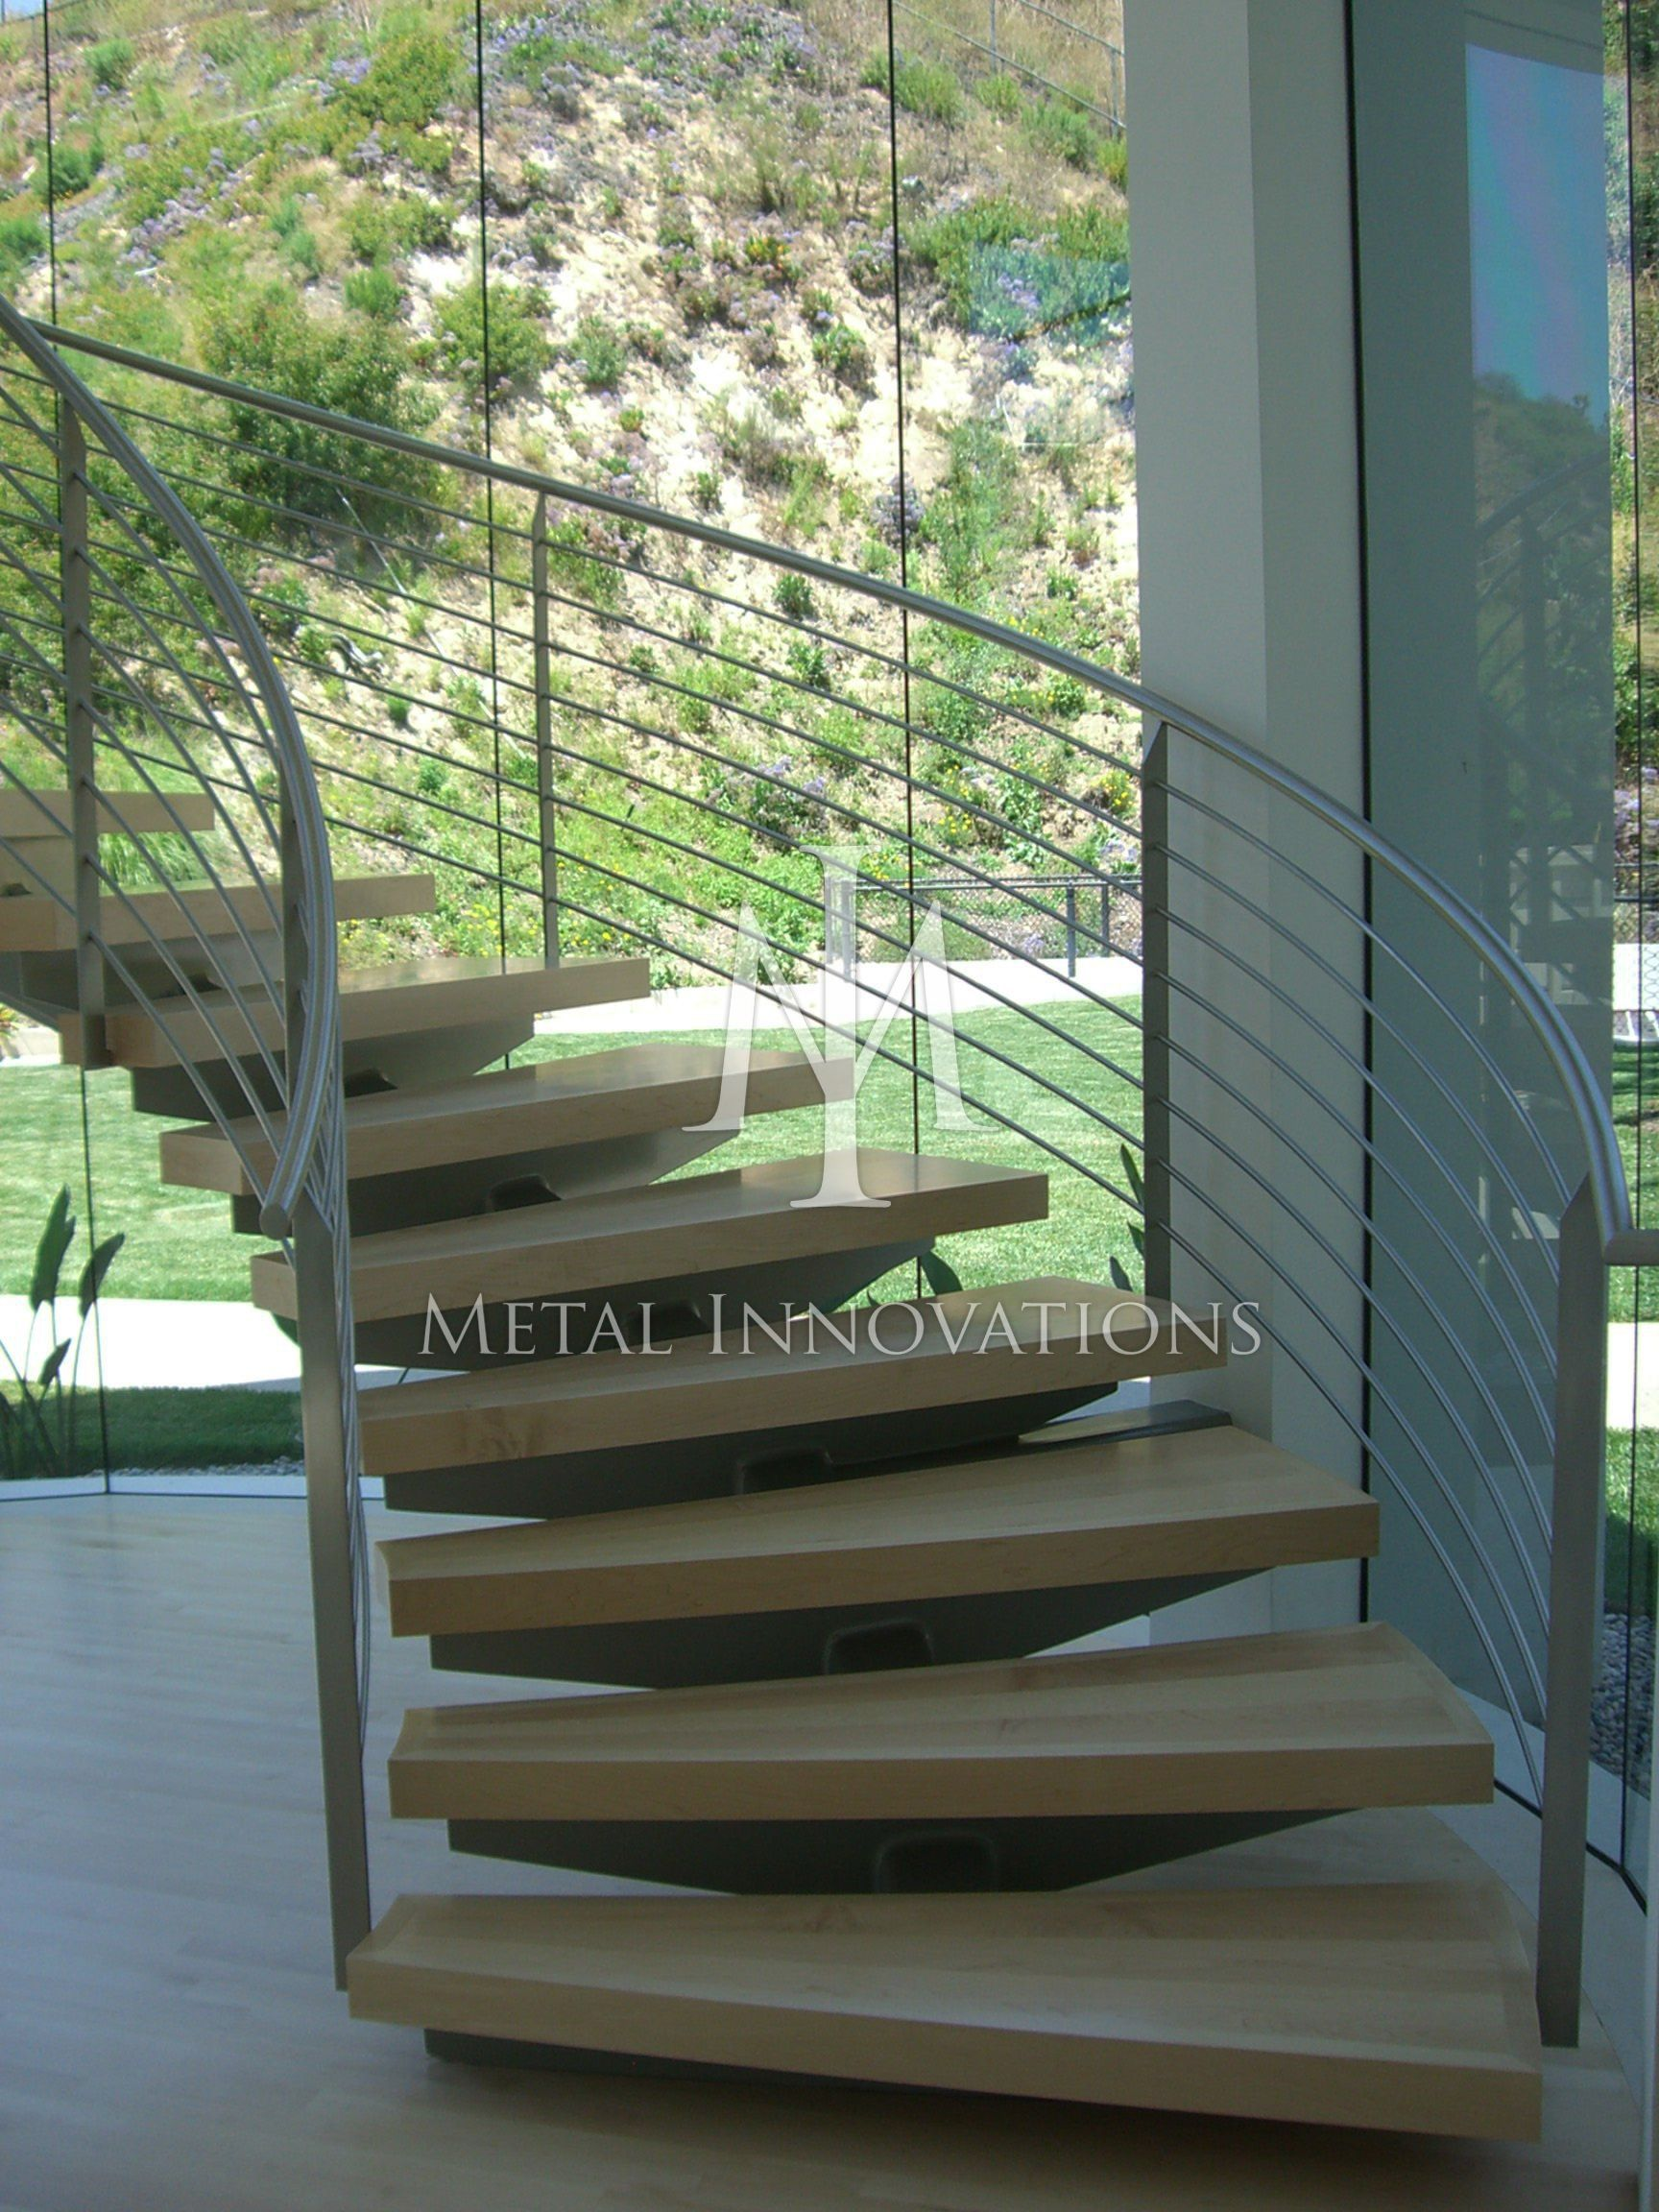 small resolution of stair rails modern rails contemporary rails stainless steel rails aluminum rails cable rails glass rails wire rails modern balusters gates fences